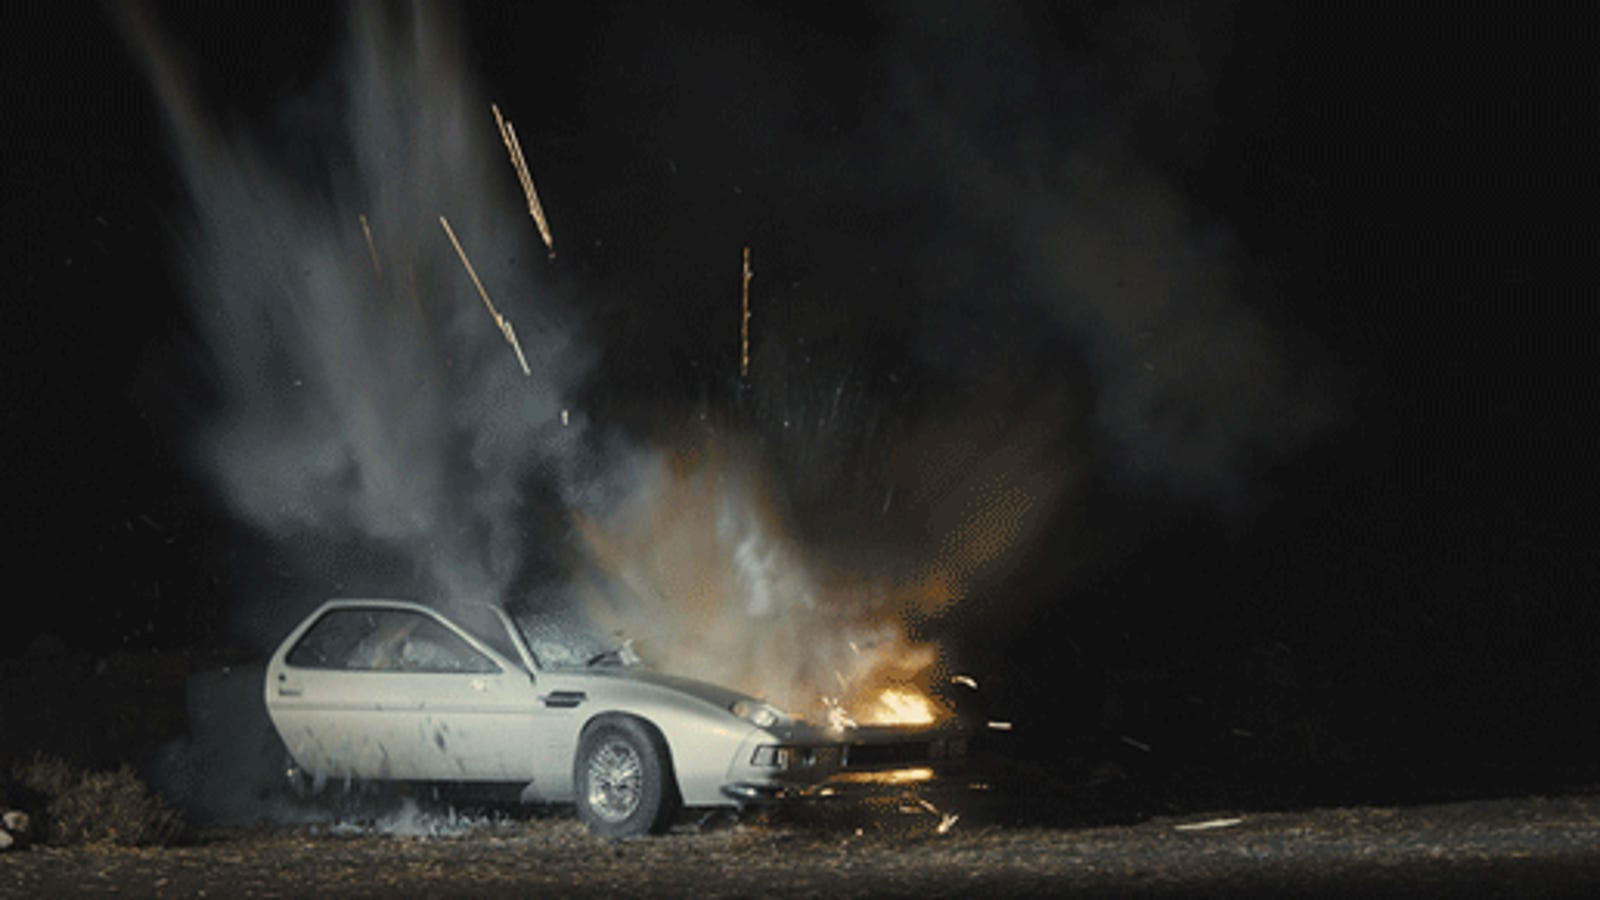 the aston martin db5 they blew up in skyfall was really an old porsche